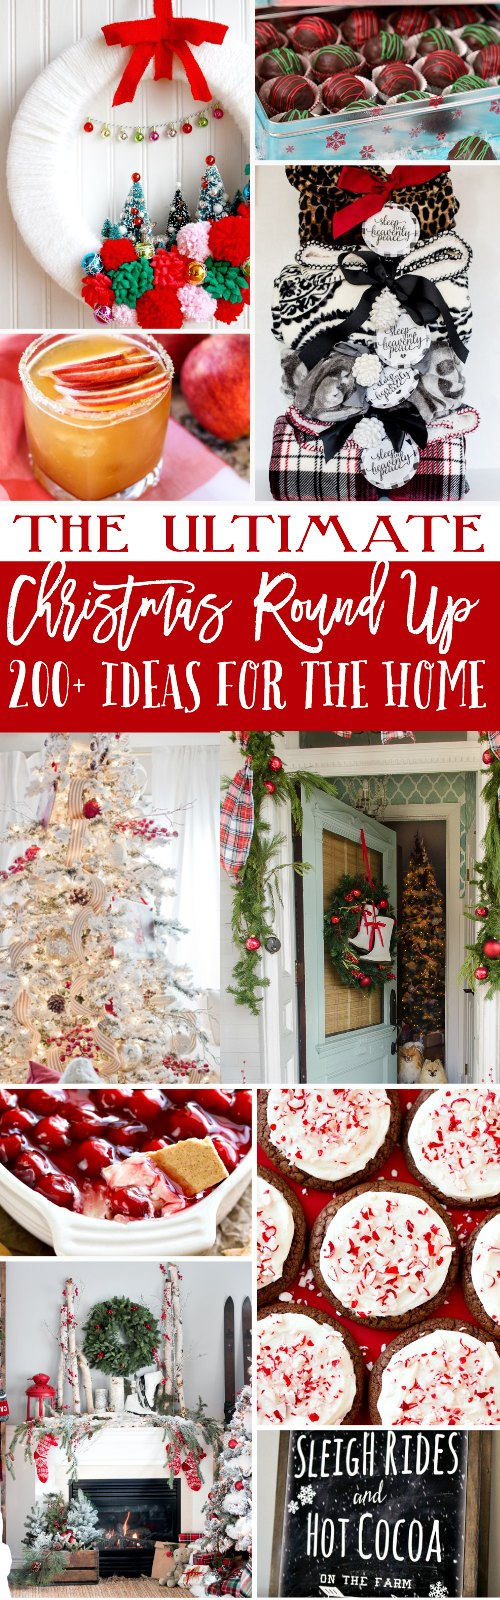 Drink Recipes for the Holiday Season | Find holiday cocktails and drinks as well as over 100 ideas for diy gifts, holiday decor, Holiday homemade goodies, and more! TodaysCreativeLife.com the-ultimate-christmas-round-up-with-200-ideas-for-the-home-gifts-and-things-to-bake